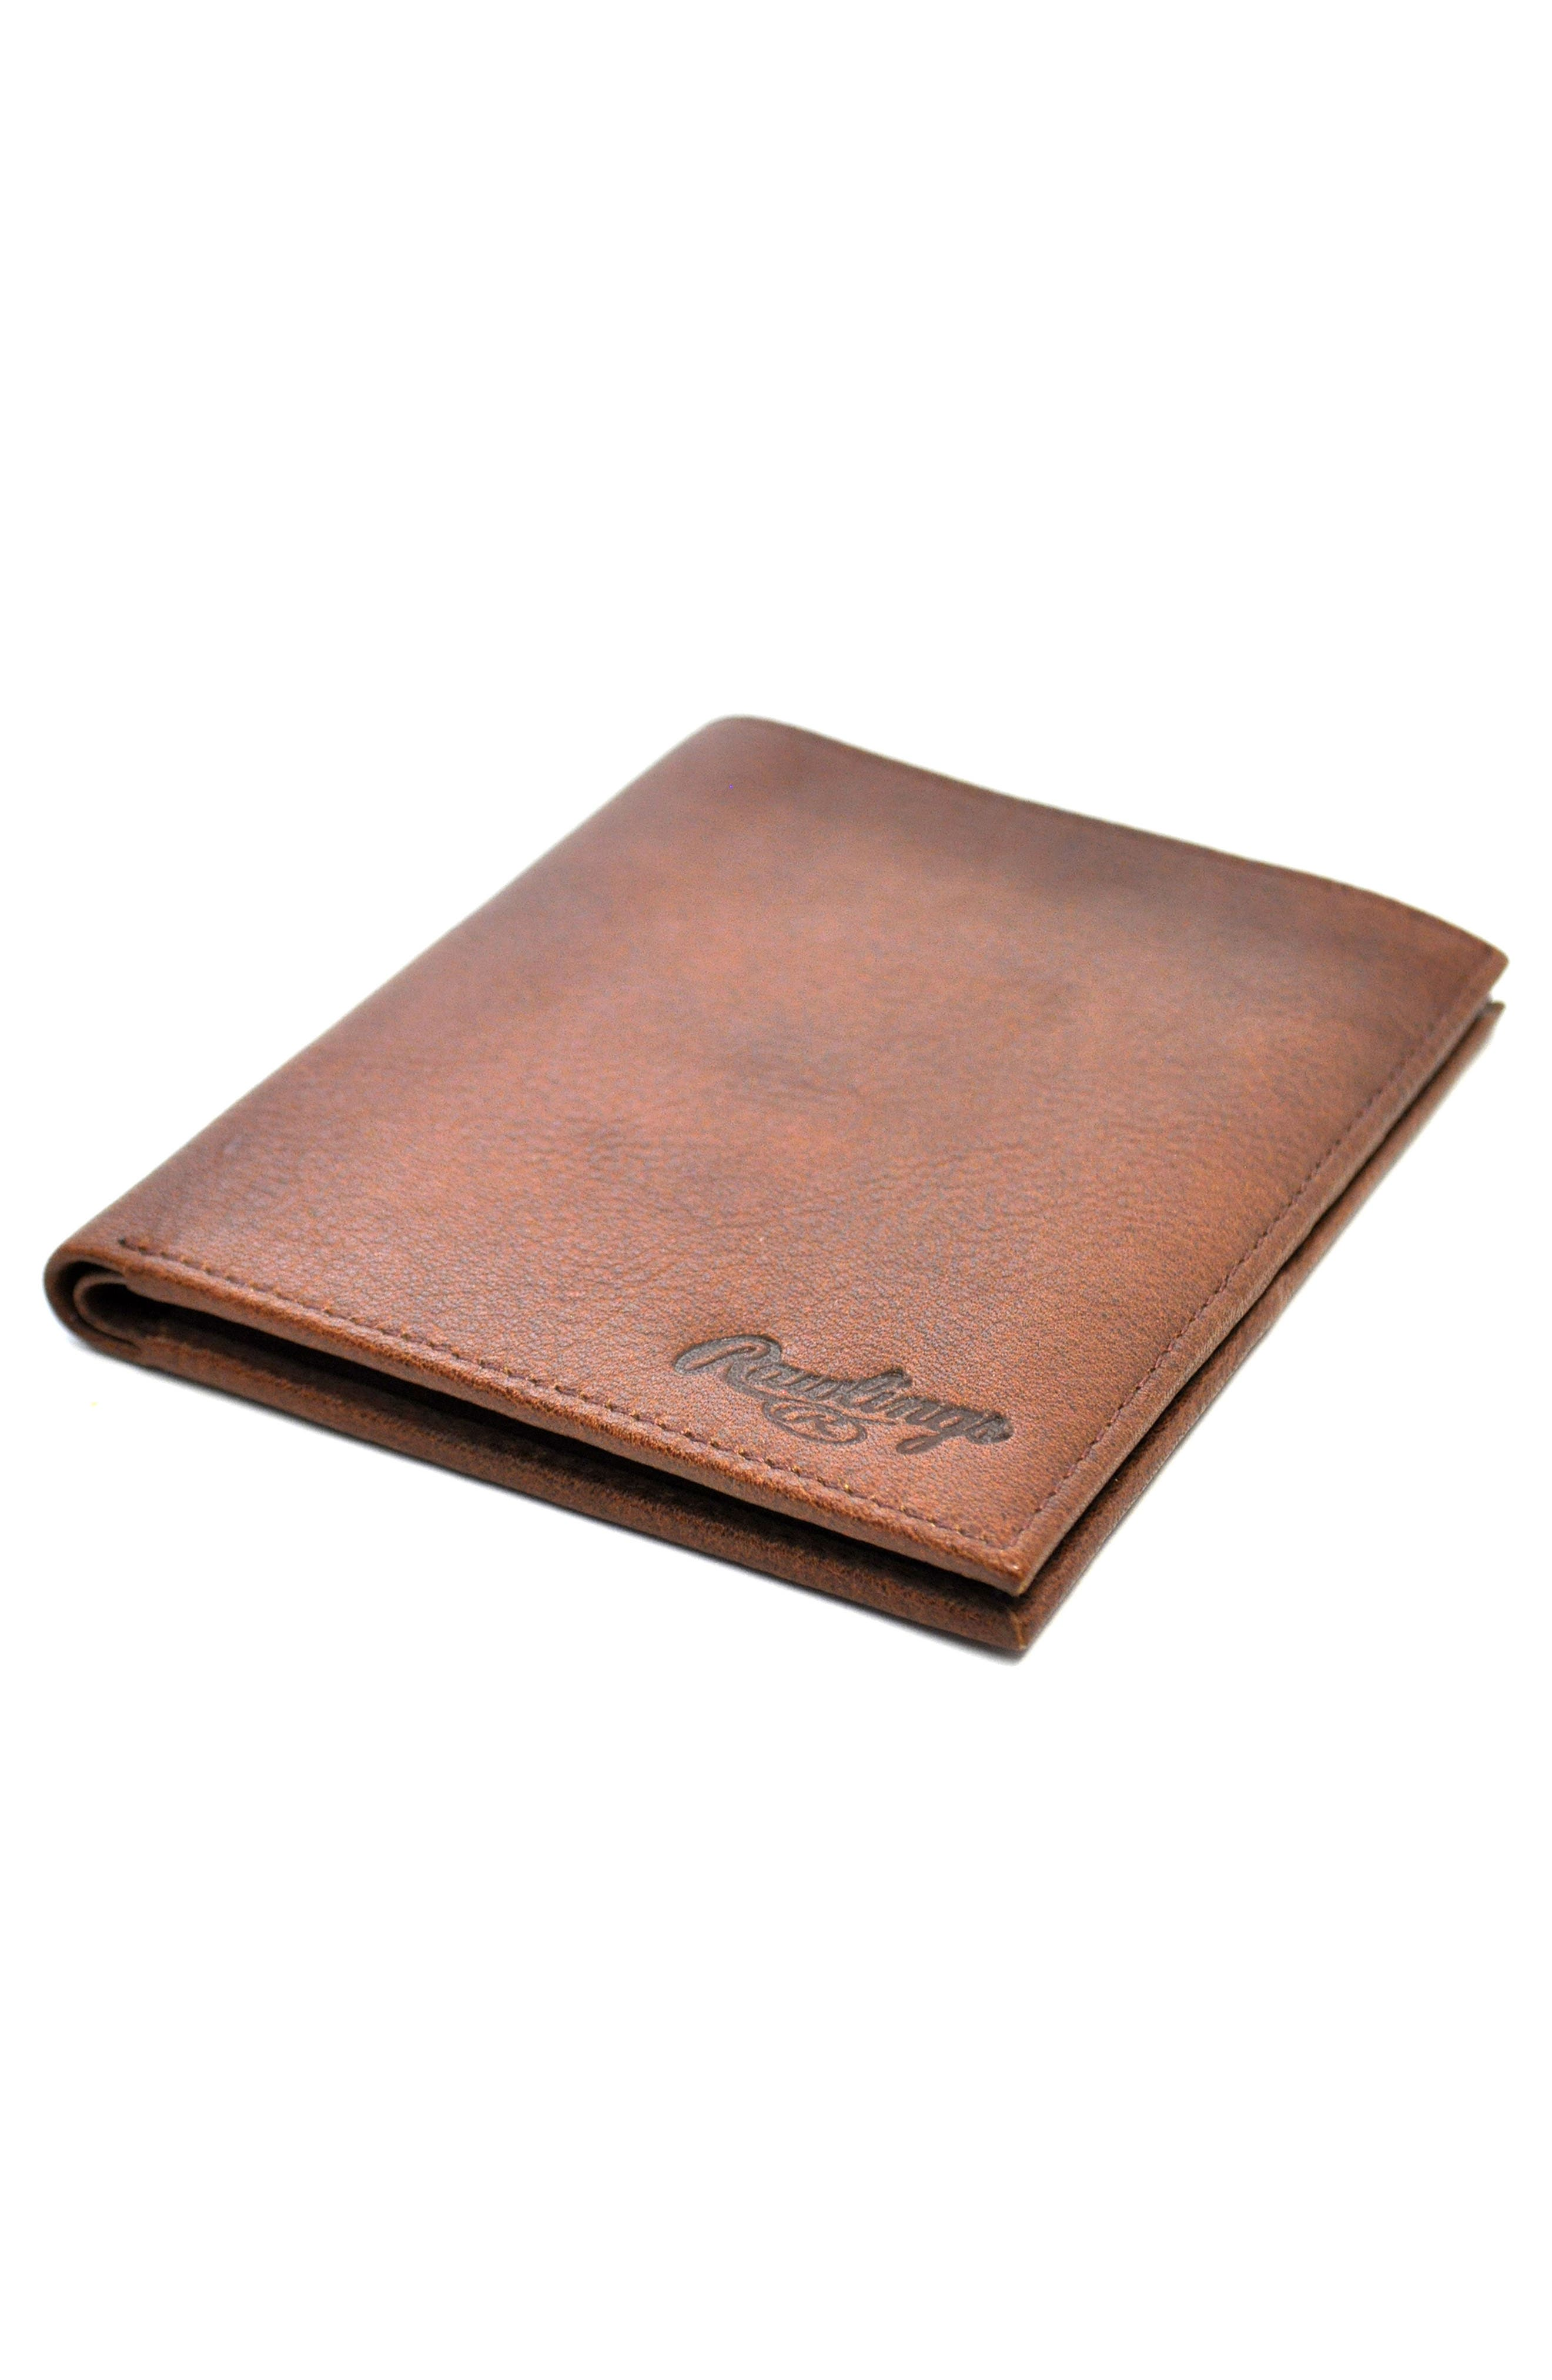 Triple Play Leather Executive Wallet,                             Alternate thumbnail 6, color,                             202